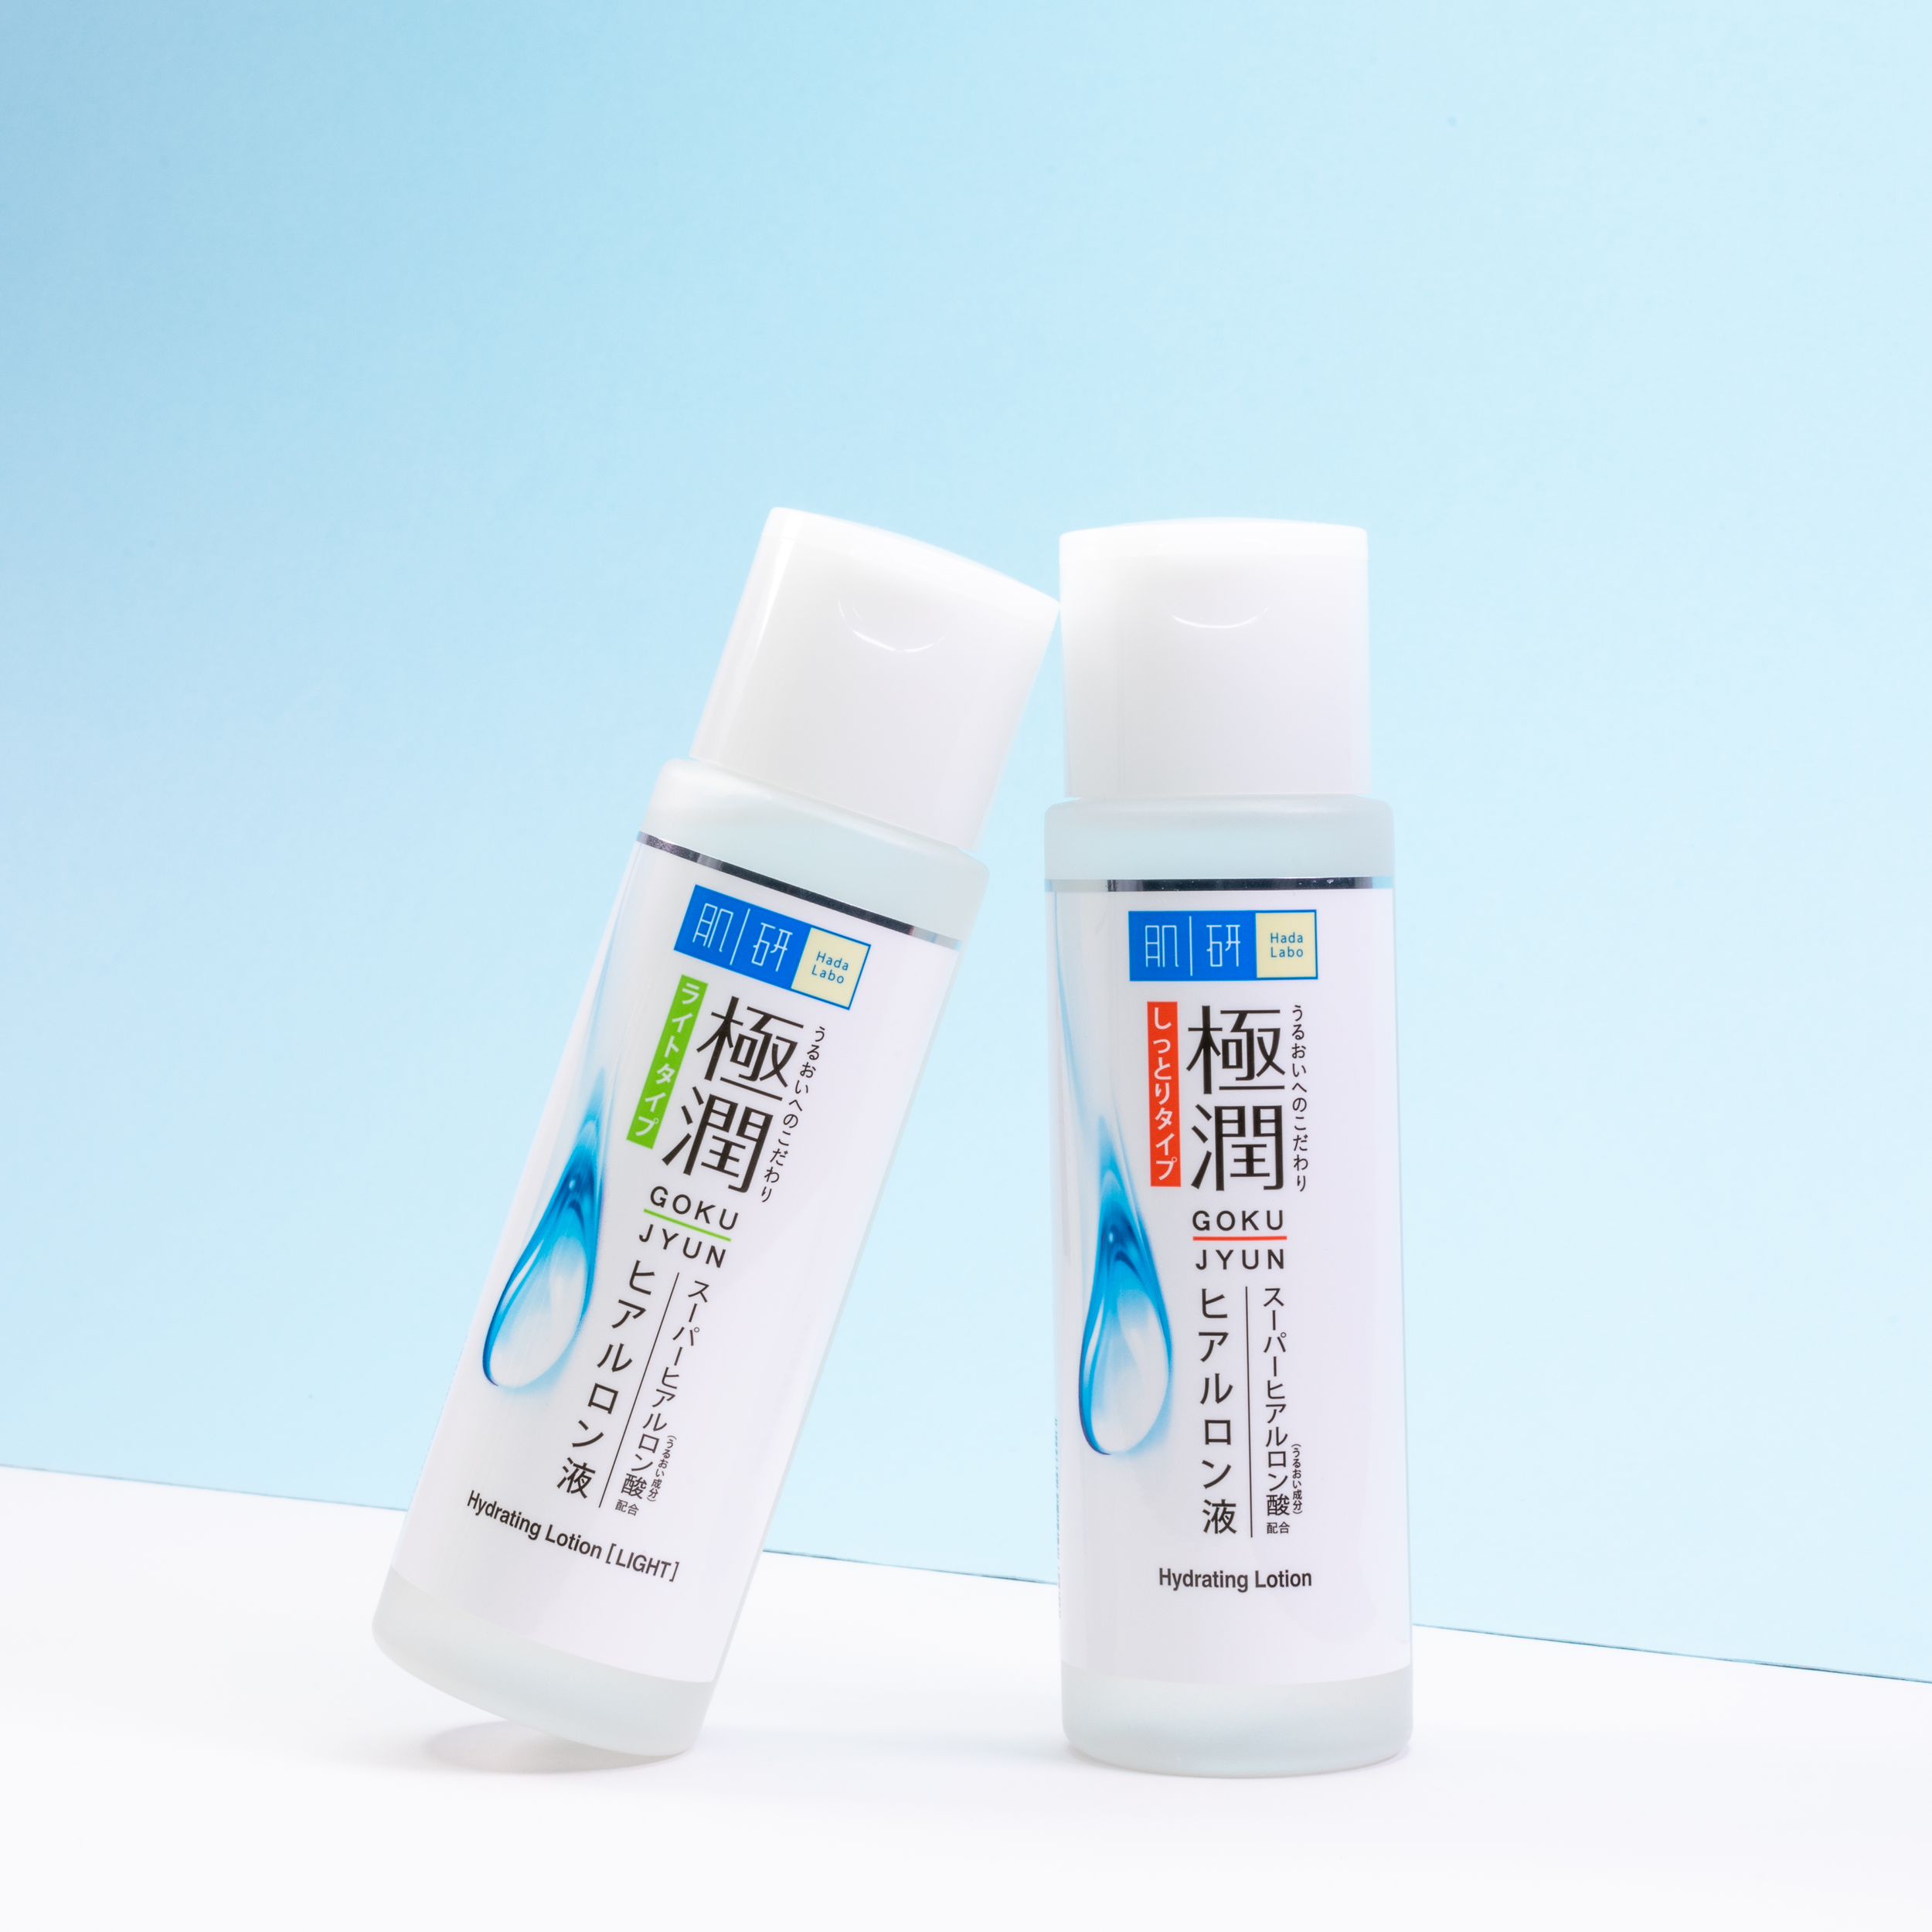 Rediscover the NEW Hada Labo Hydrating Lotion - With 4 types of Hyaluronic Acid in perfect ratio and different sizes, it is formulated to penetrate every layer of your skin to absorb, lock in, store, and replenish water, so that every inch of your skin is smooth and bouncy – for mochi mochi skin!